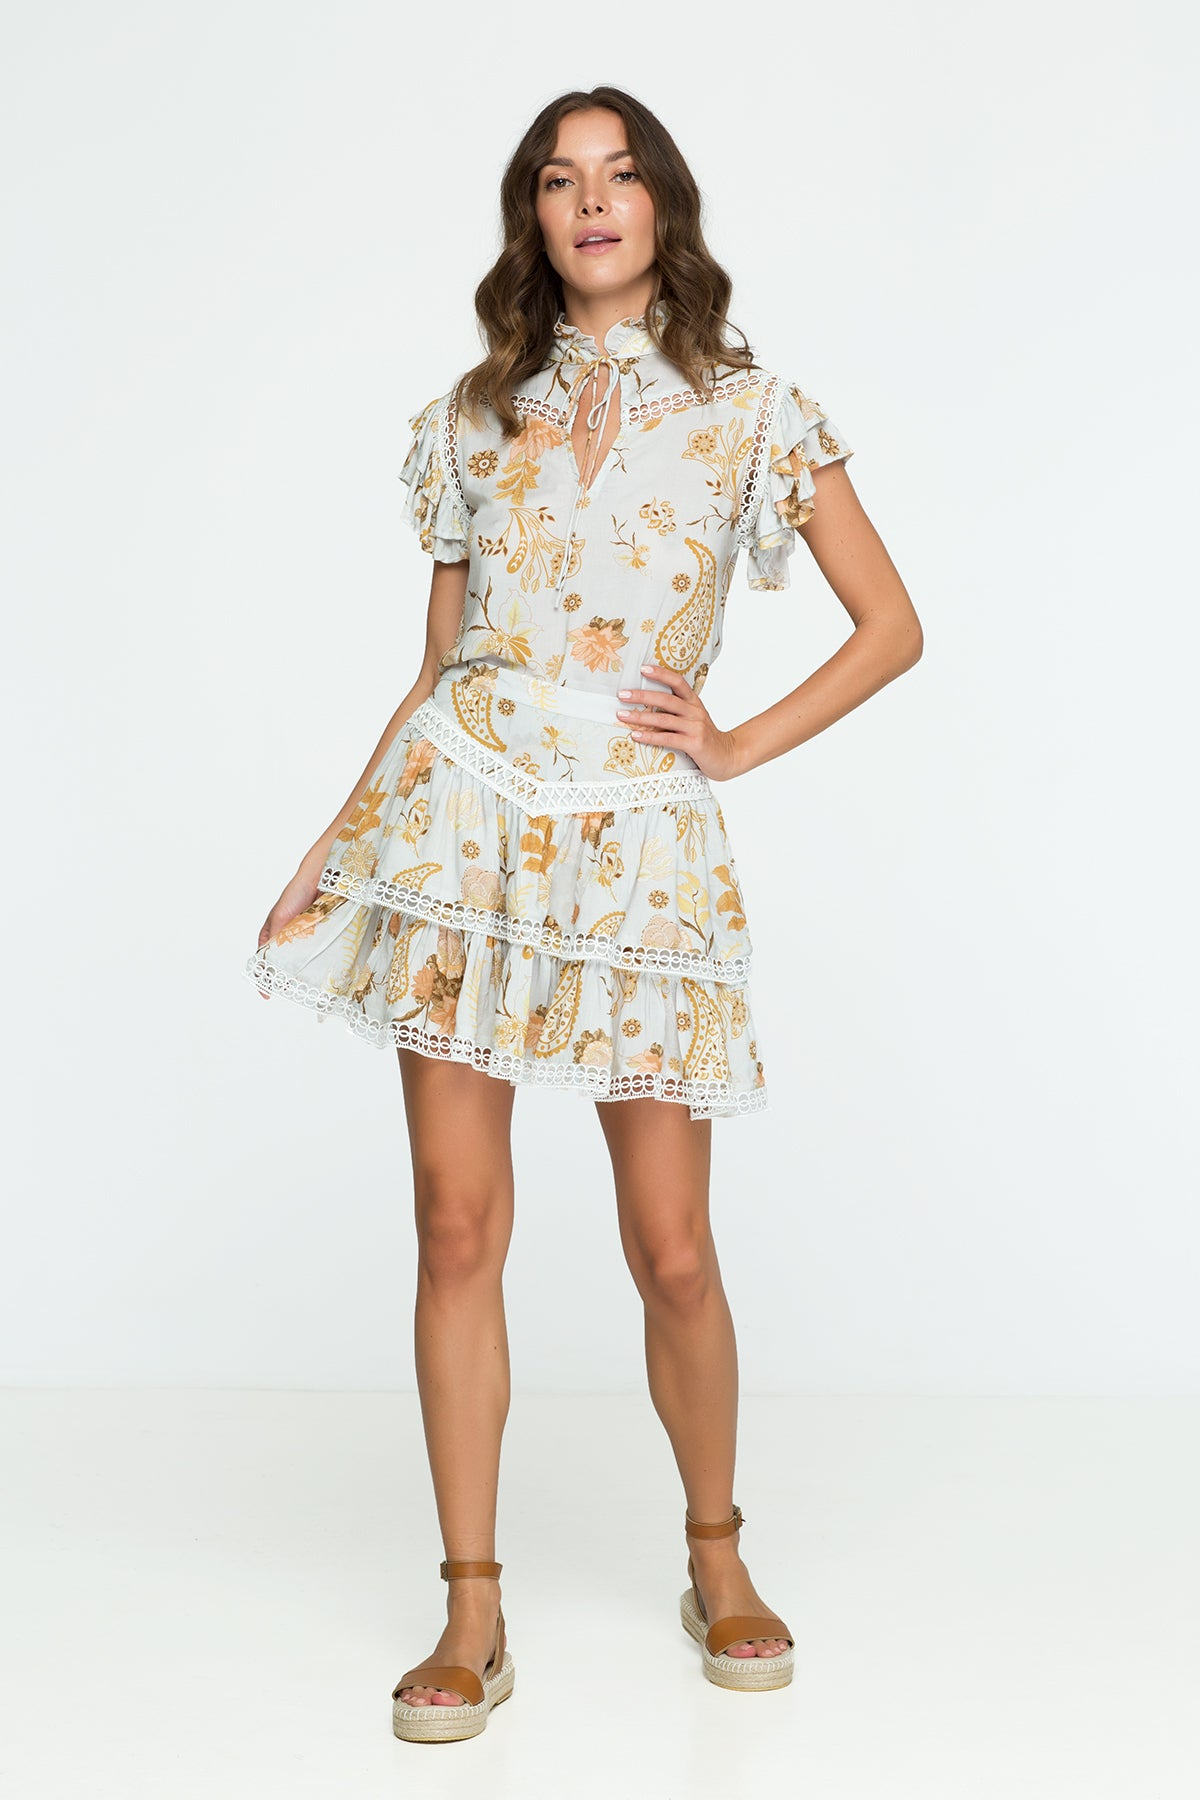 Flower Skirt Floral Print Mini Skirt